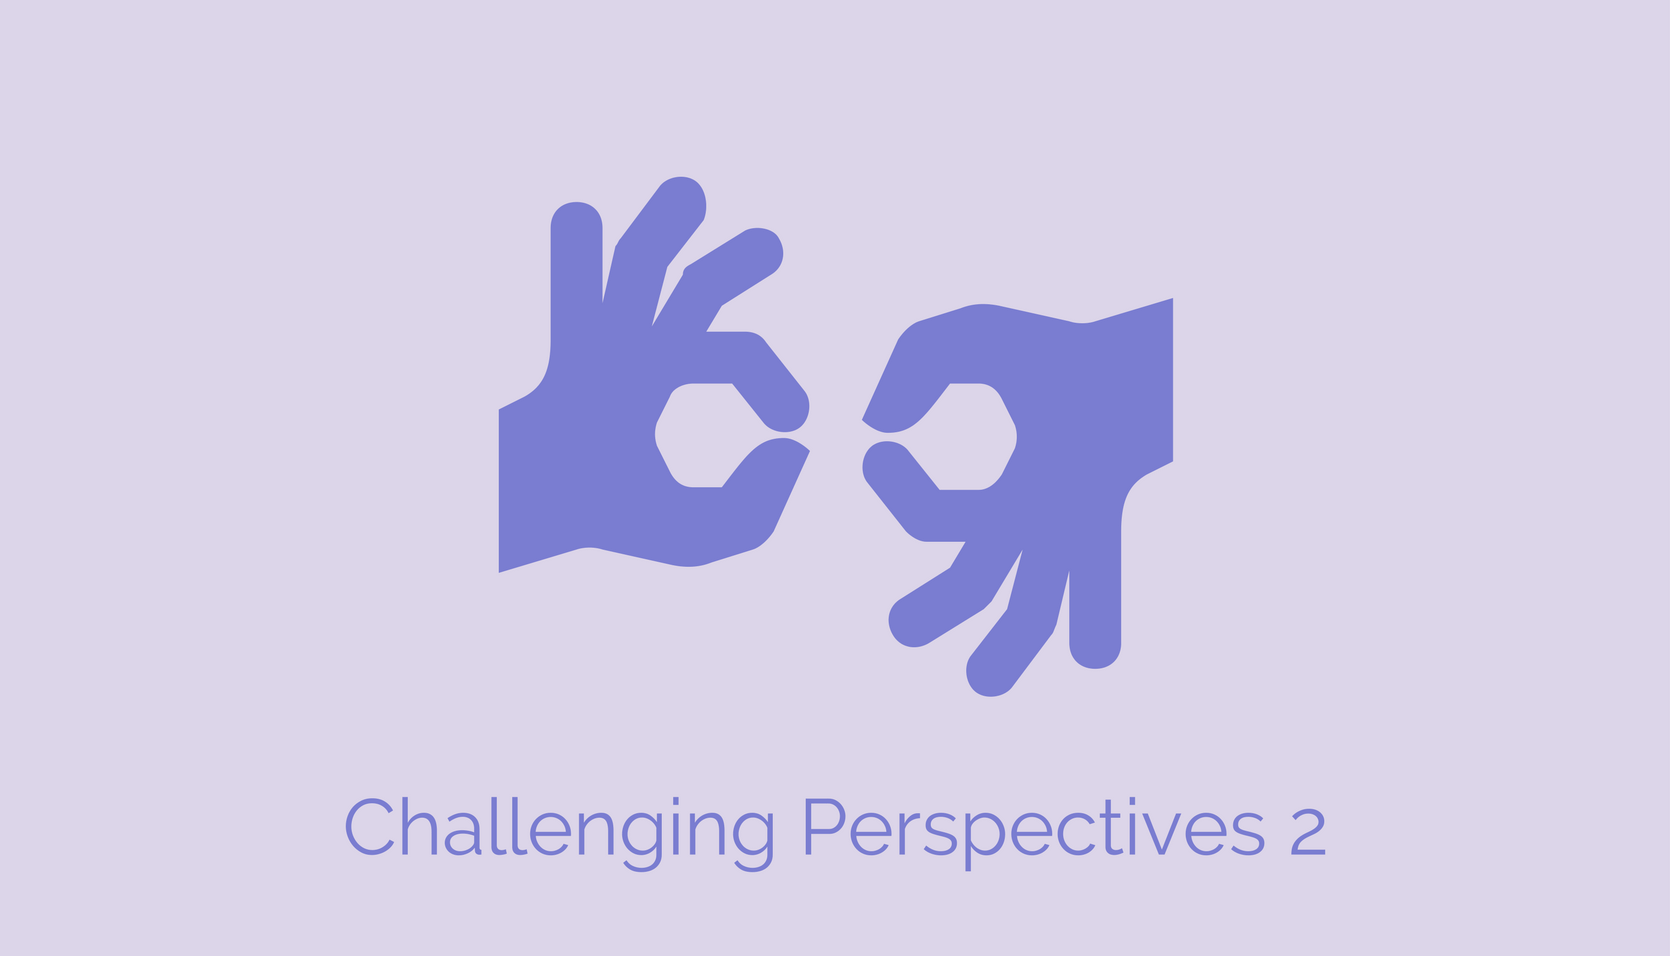 Challenging Perspectives 2